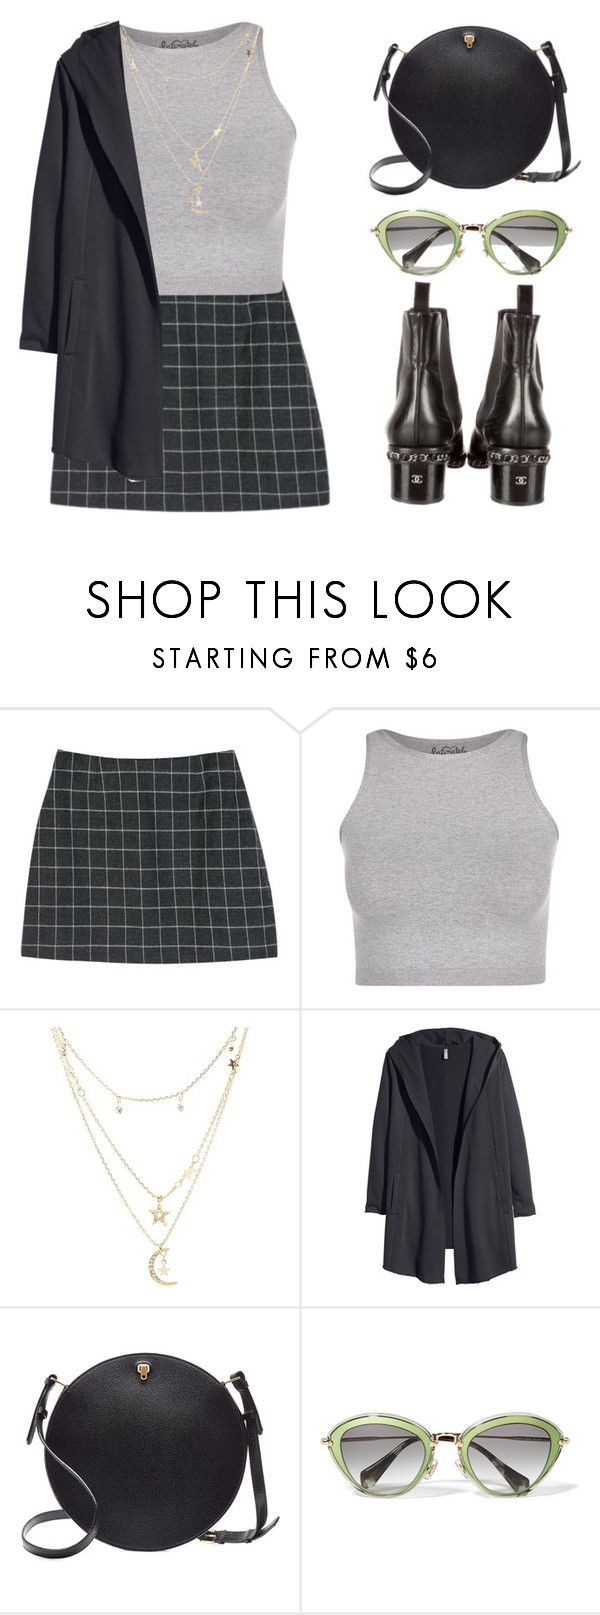 @england by melanie-pacheco on Polyvore featuring moda, Free People, H&M, StyleNanda, Chanel, Valextra, Charlotte Russe and Miu Miu